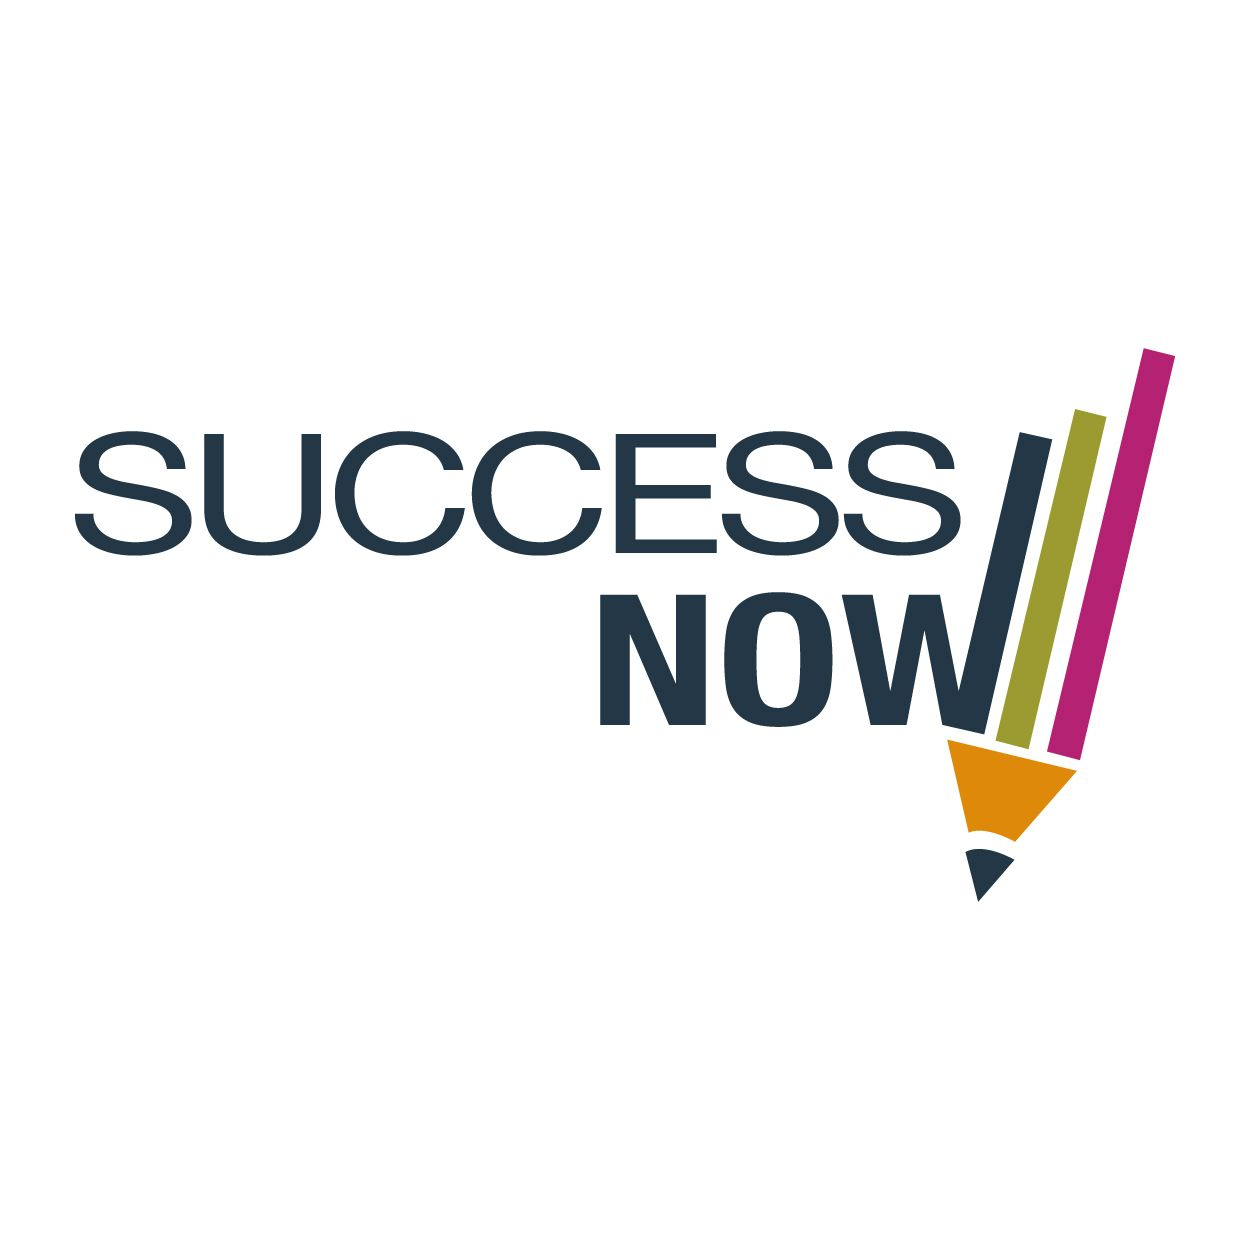 Schools Education6 25 18students: Success Now! Provides Schools And Districts A Research